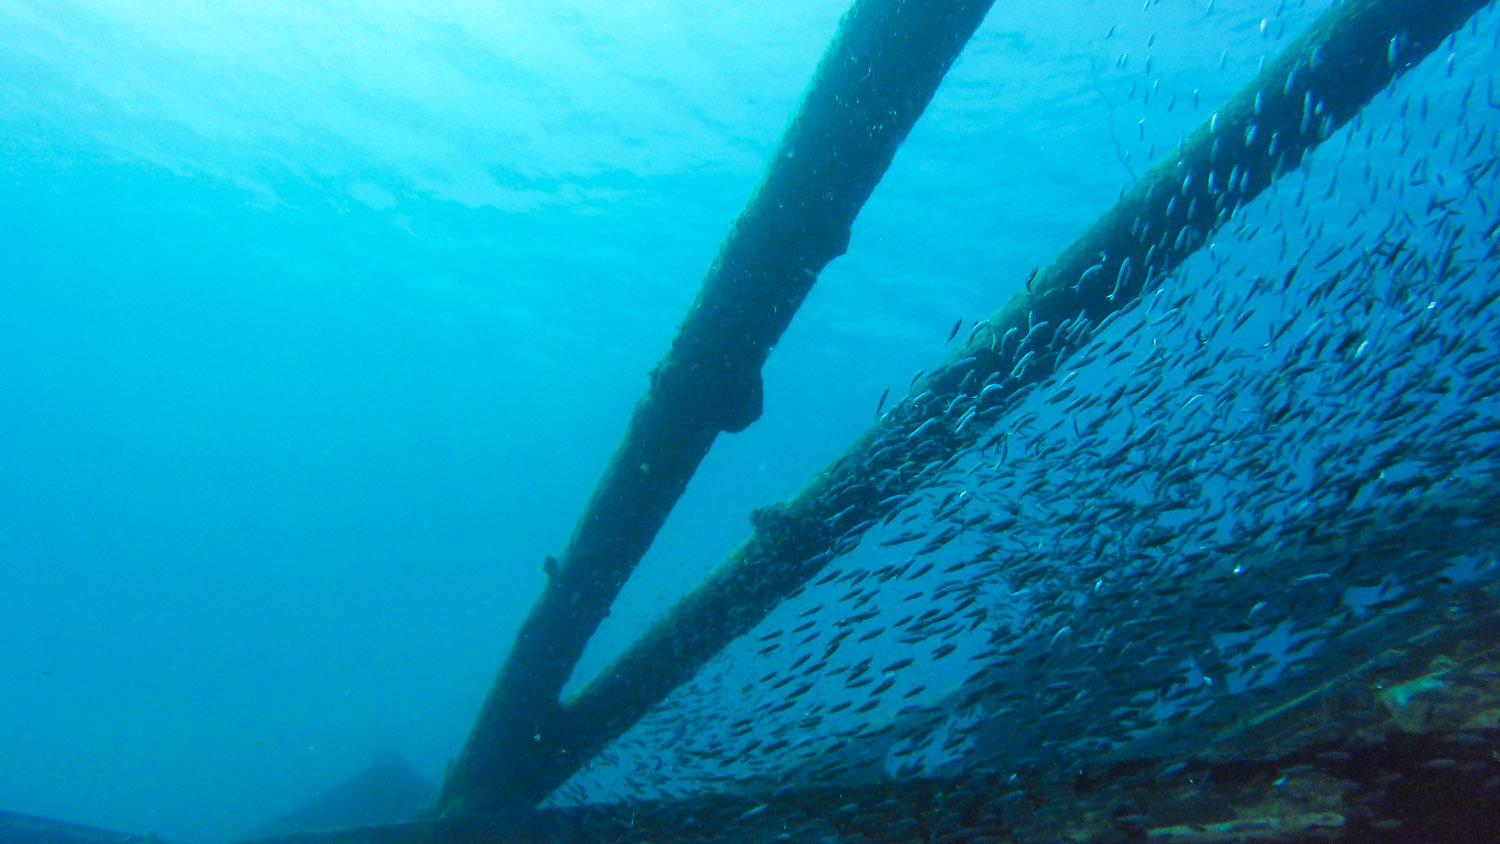 School of juvenile fish taking shelter on the shipwreck